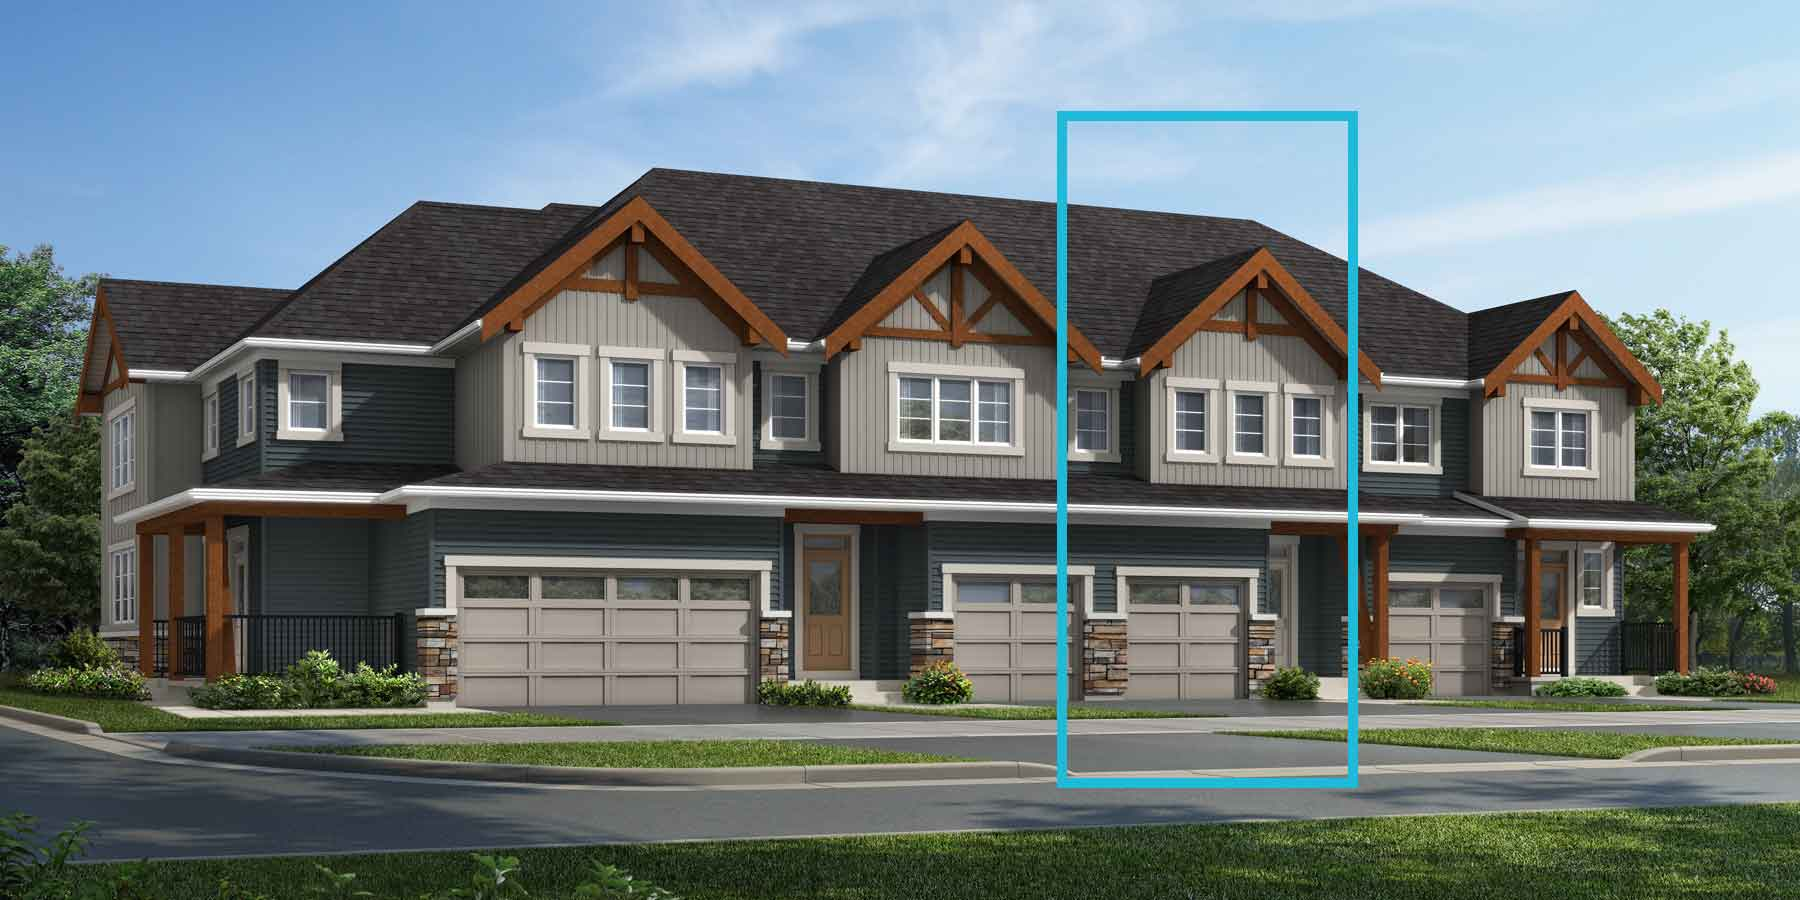 Nova Plan TownHomes at Carrington in Calgary Alberta by Mattamy Homes